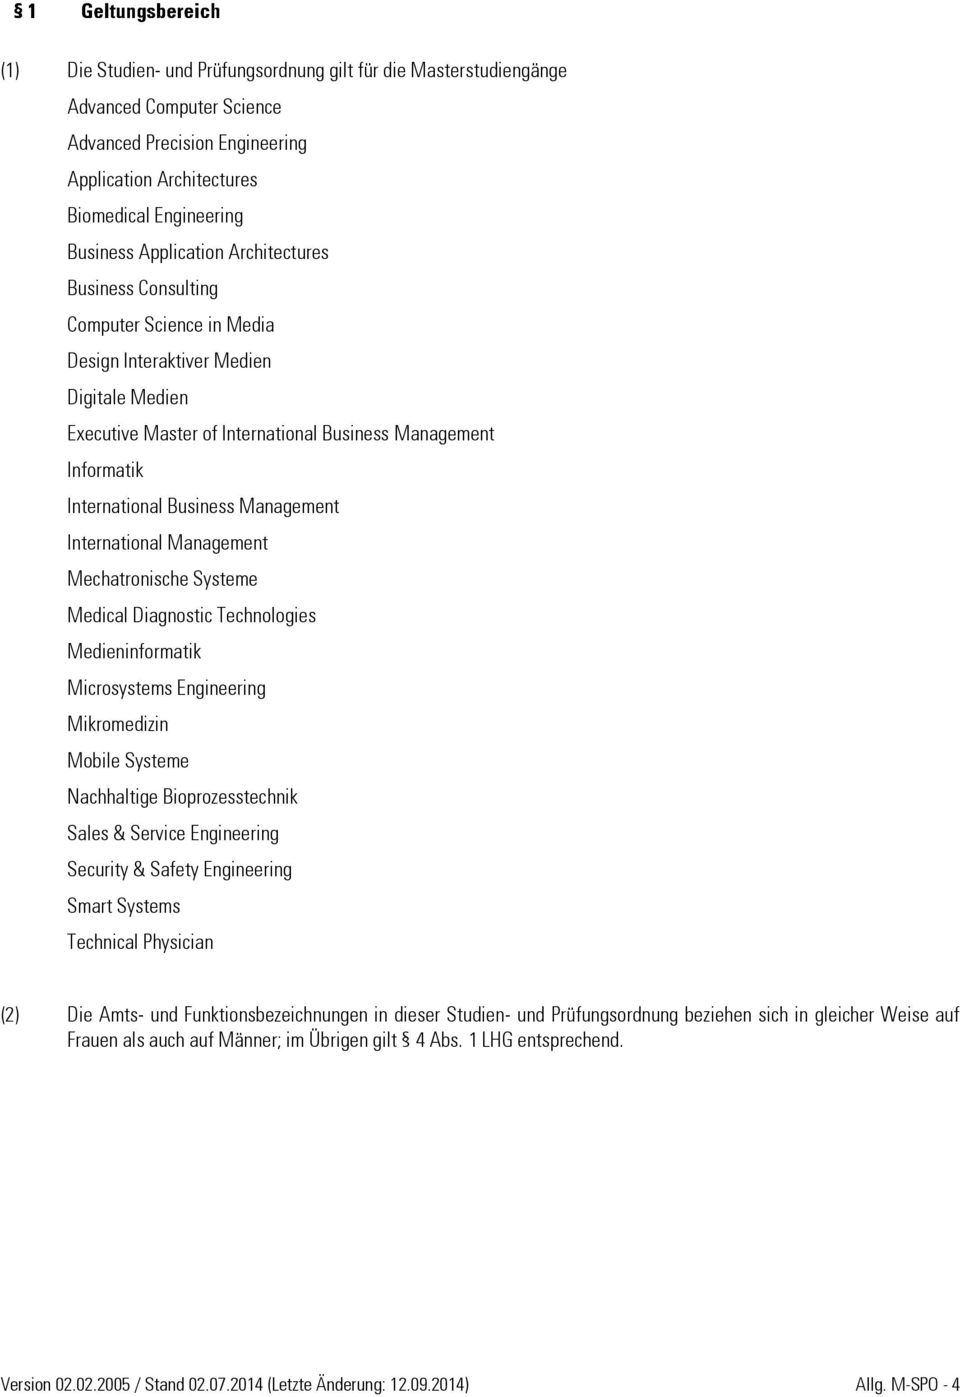 Management International Management Mechatronische Systeme Medical Diagnostic Technologies Medieninformatik Microsystems Engineering Mikromedizin Mobile Systeme Nachhaltige Bioprozesstechnik Sales &